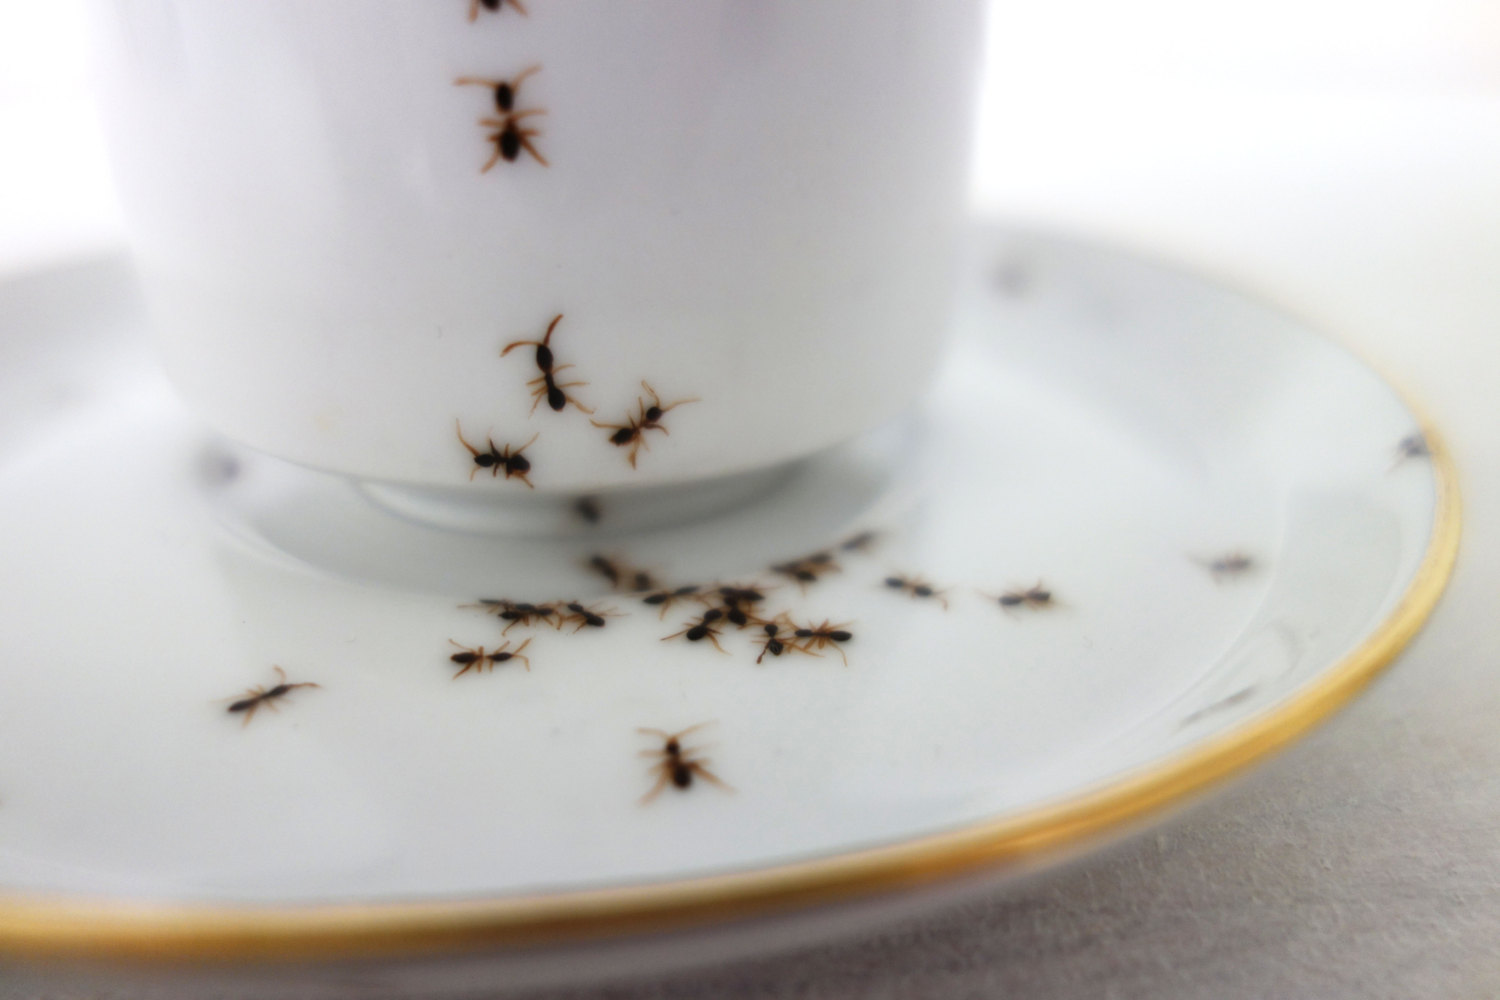 ants-on-porcelain-evelyn-bracklow-03